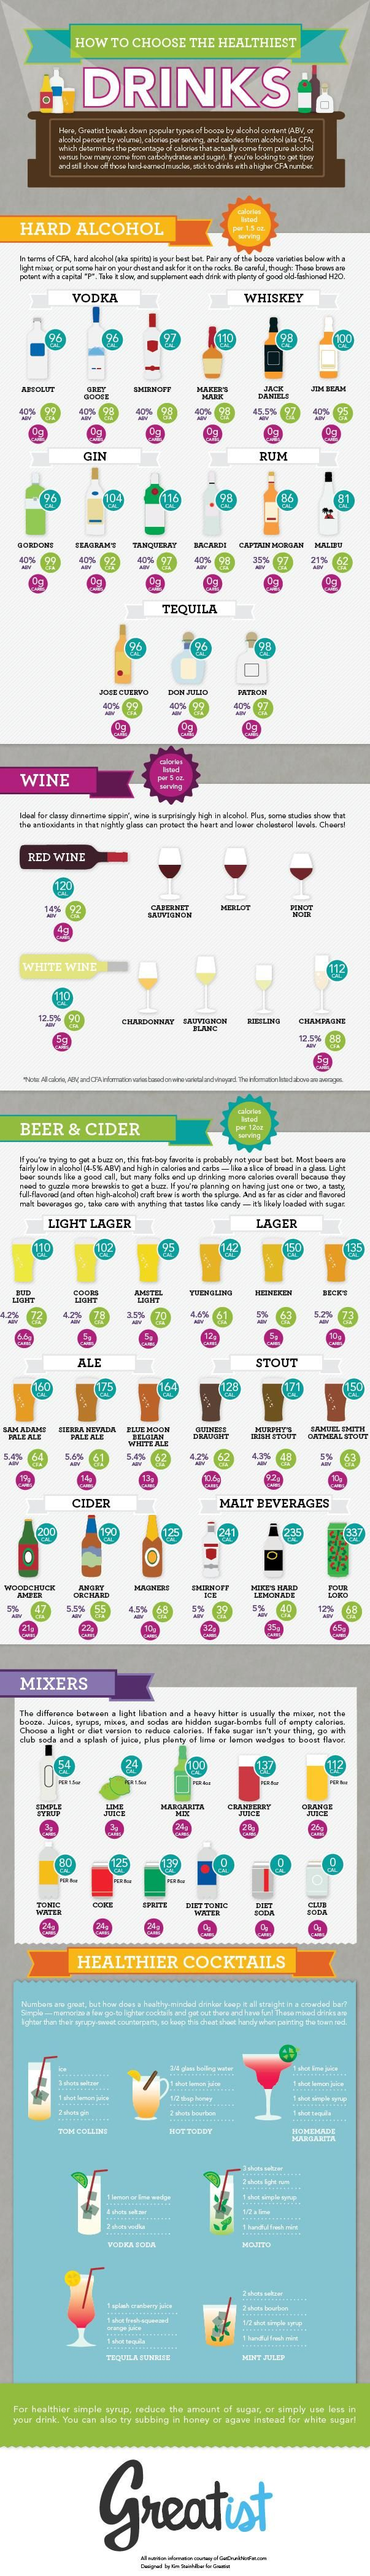 Drinking done right - healthiest alcohol choices